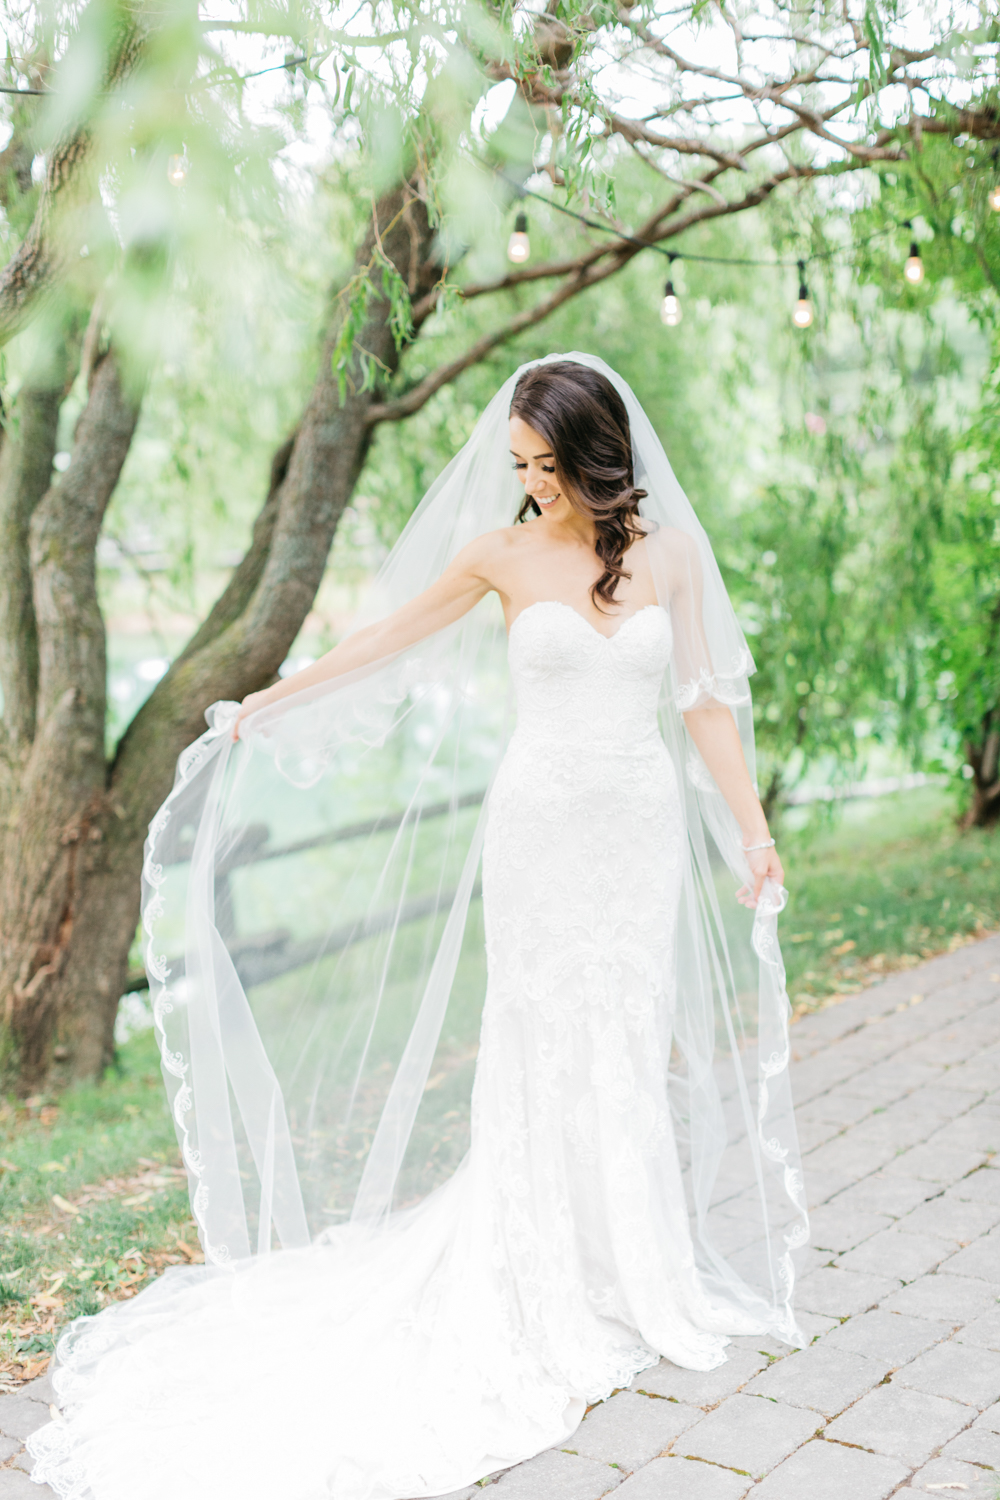 Bridal portrait at Kurtz Orchard Vineyard